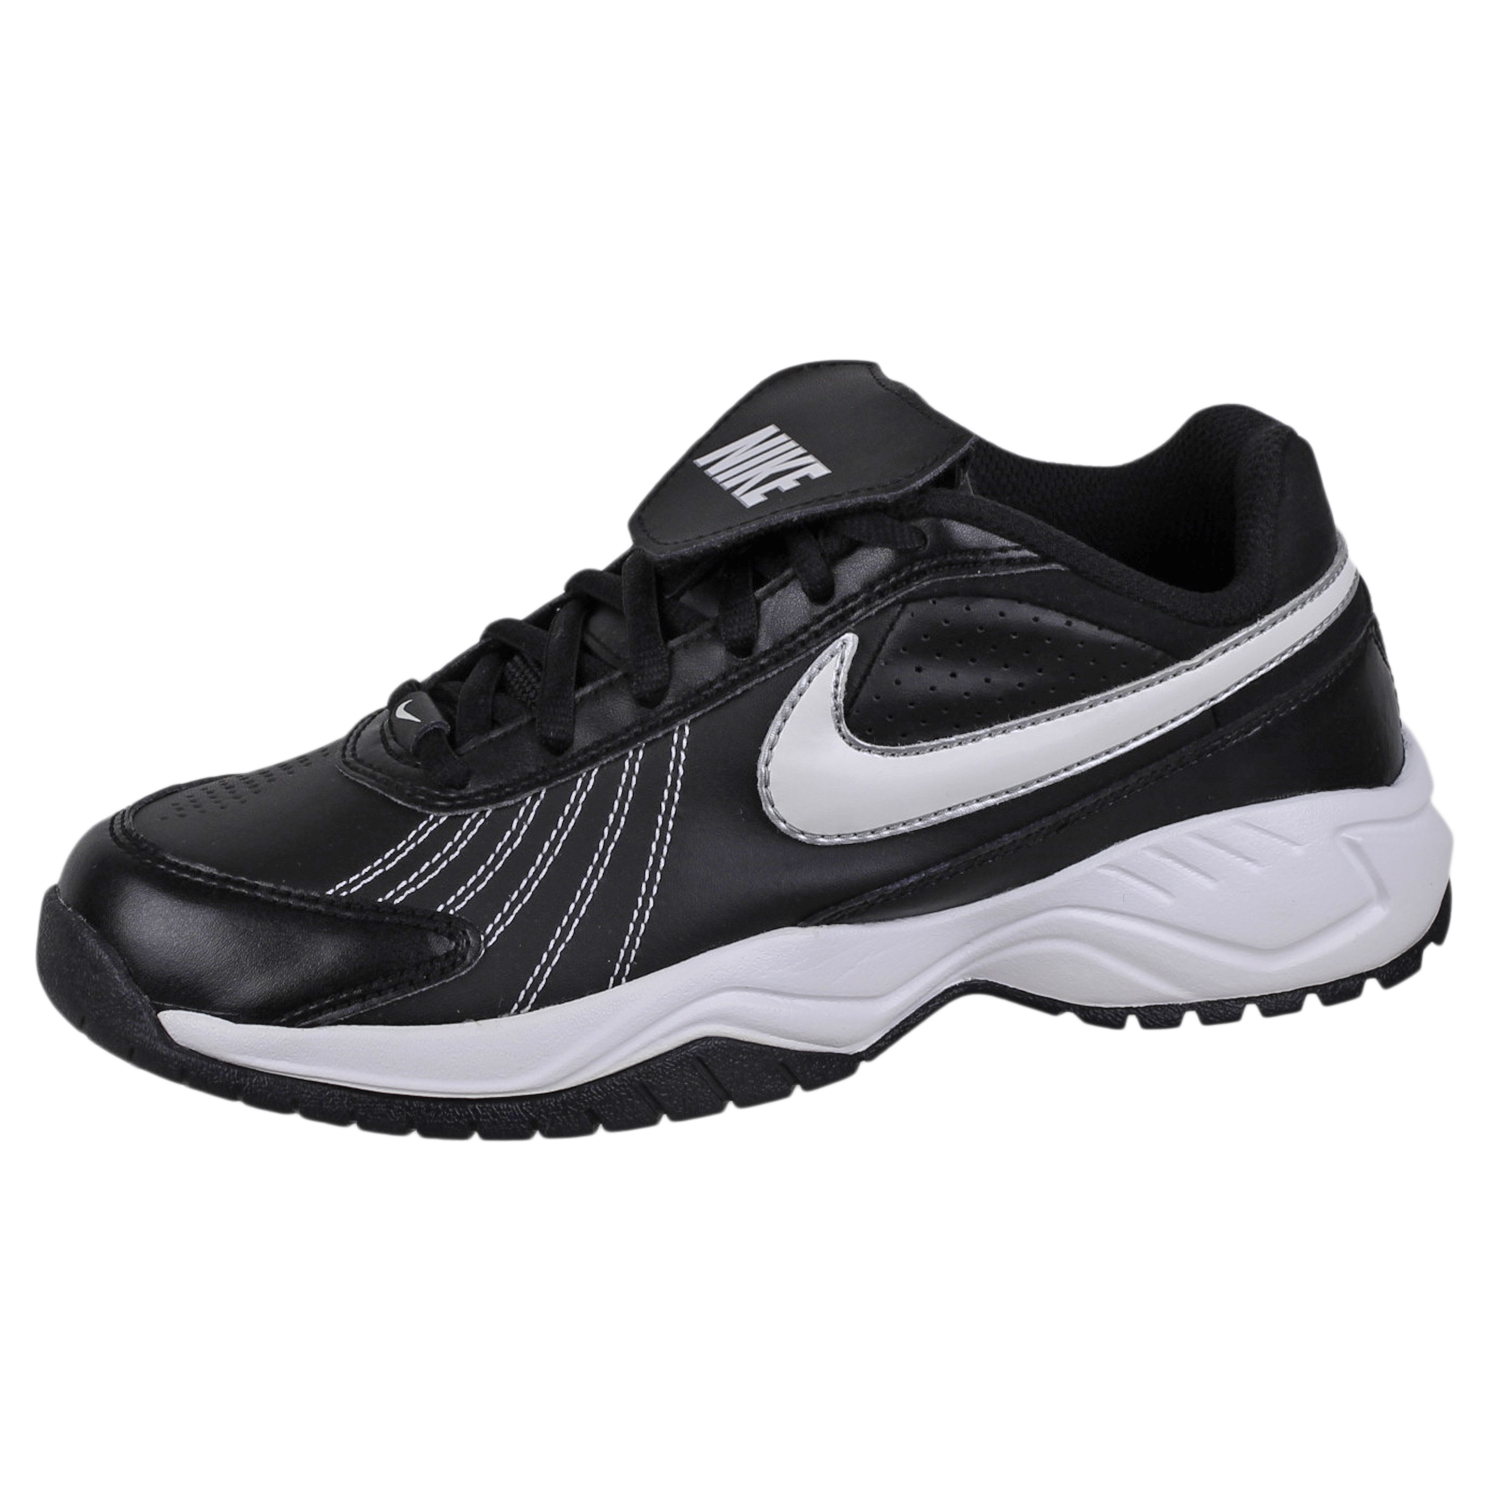 Details about Nike Air Mens Diamond Trainer Baseball Shoes 333785 Black White  size 4.5 321029c64